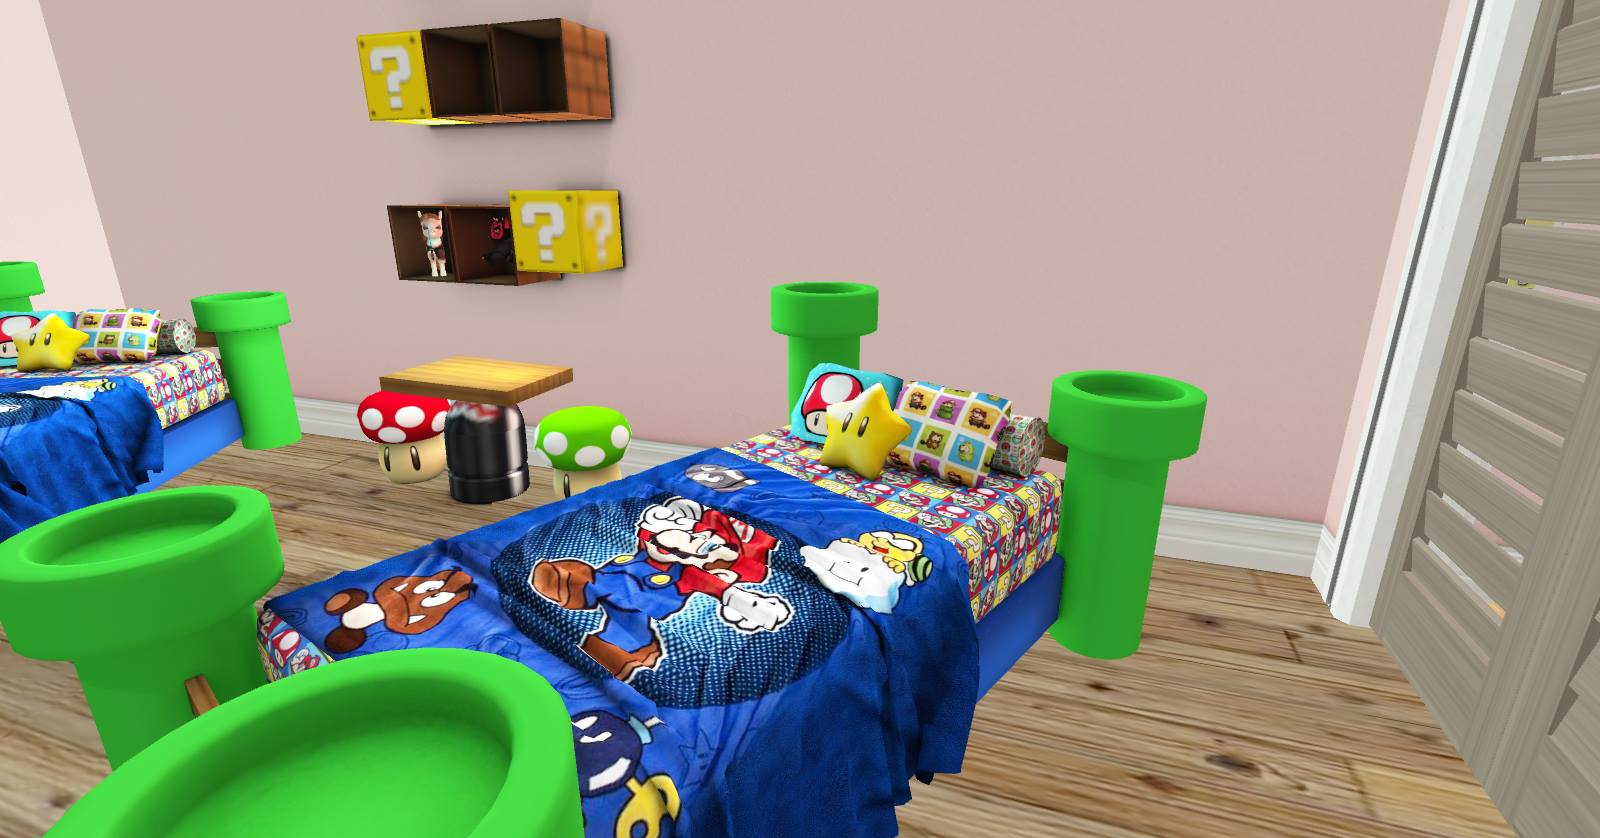 The adorable beds <33